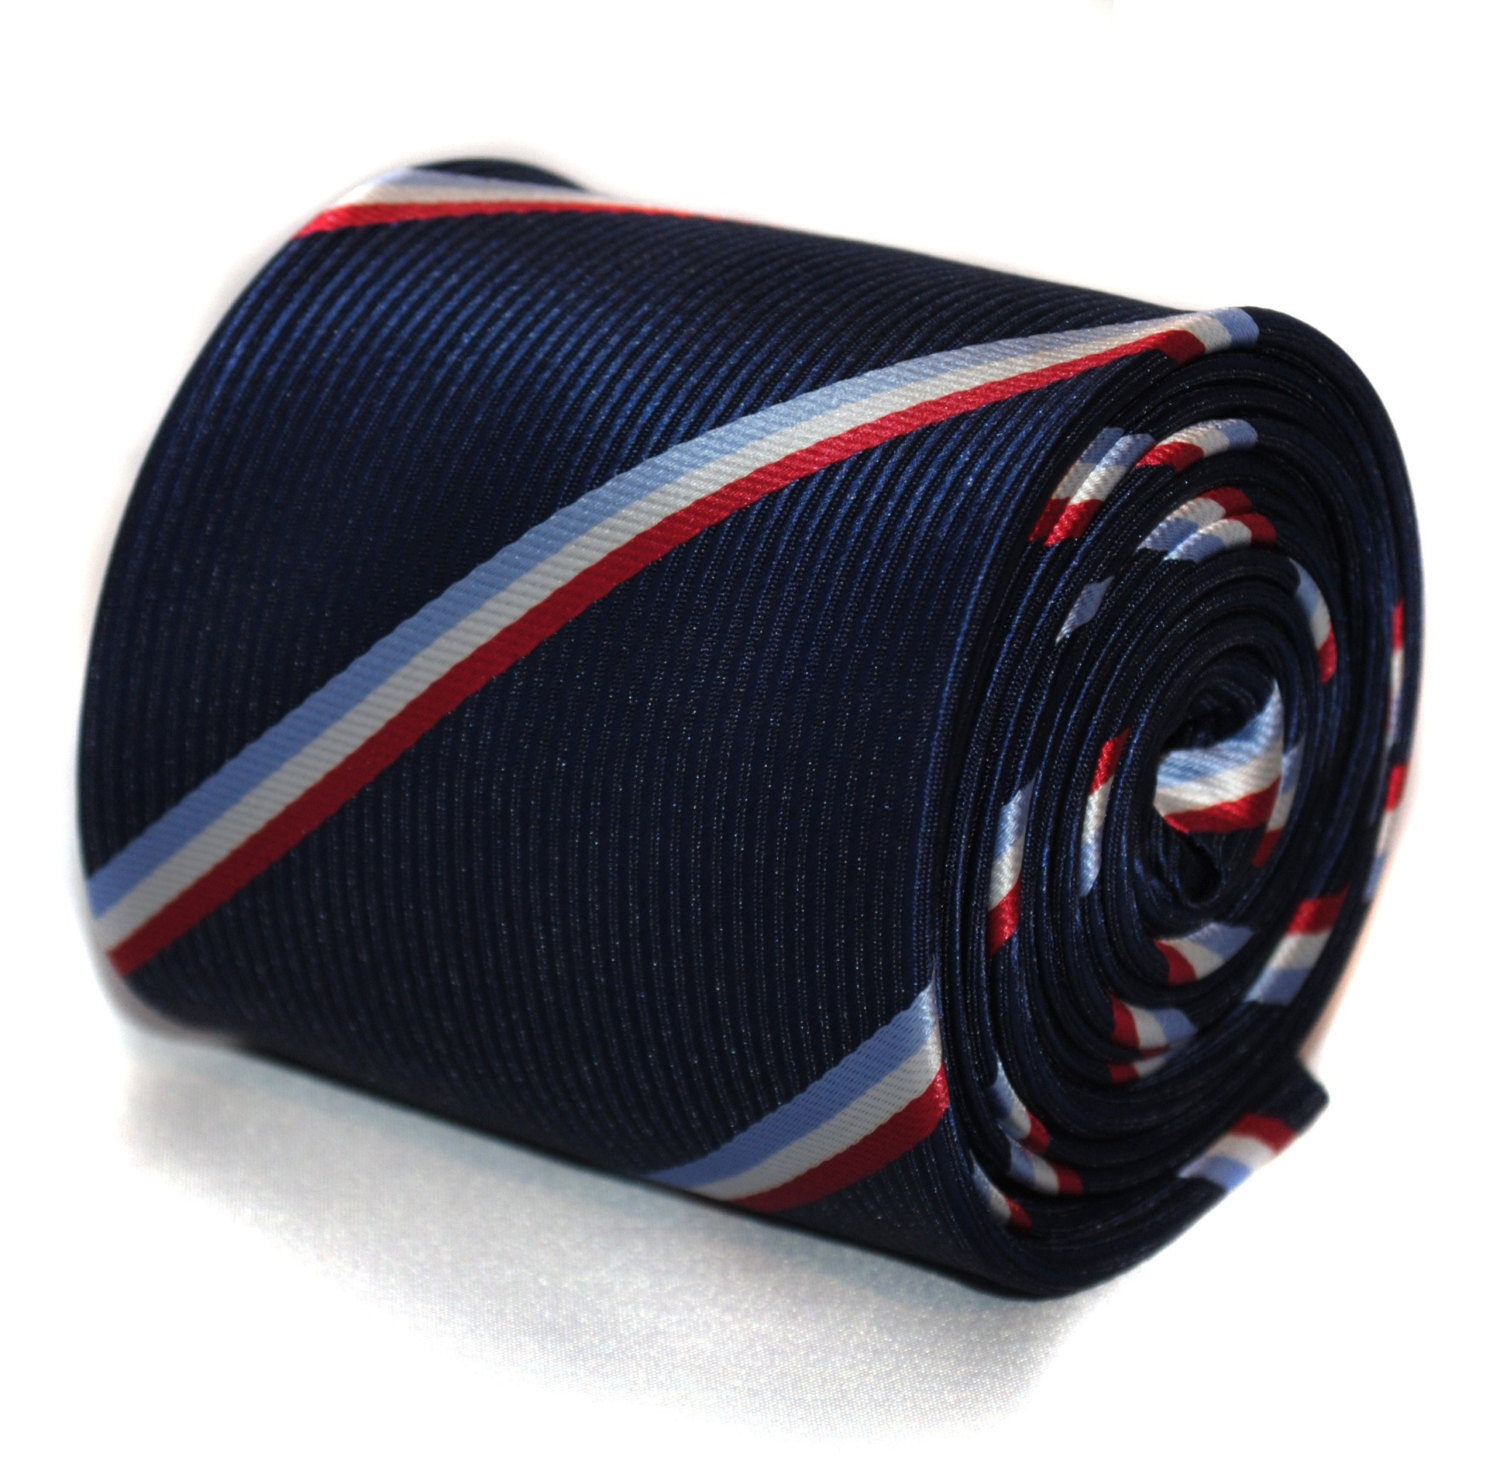 navy blue with red, light blue and white striped tie with floral design to the r